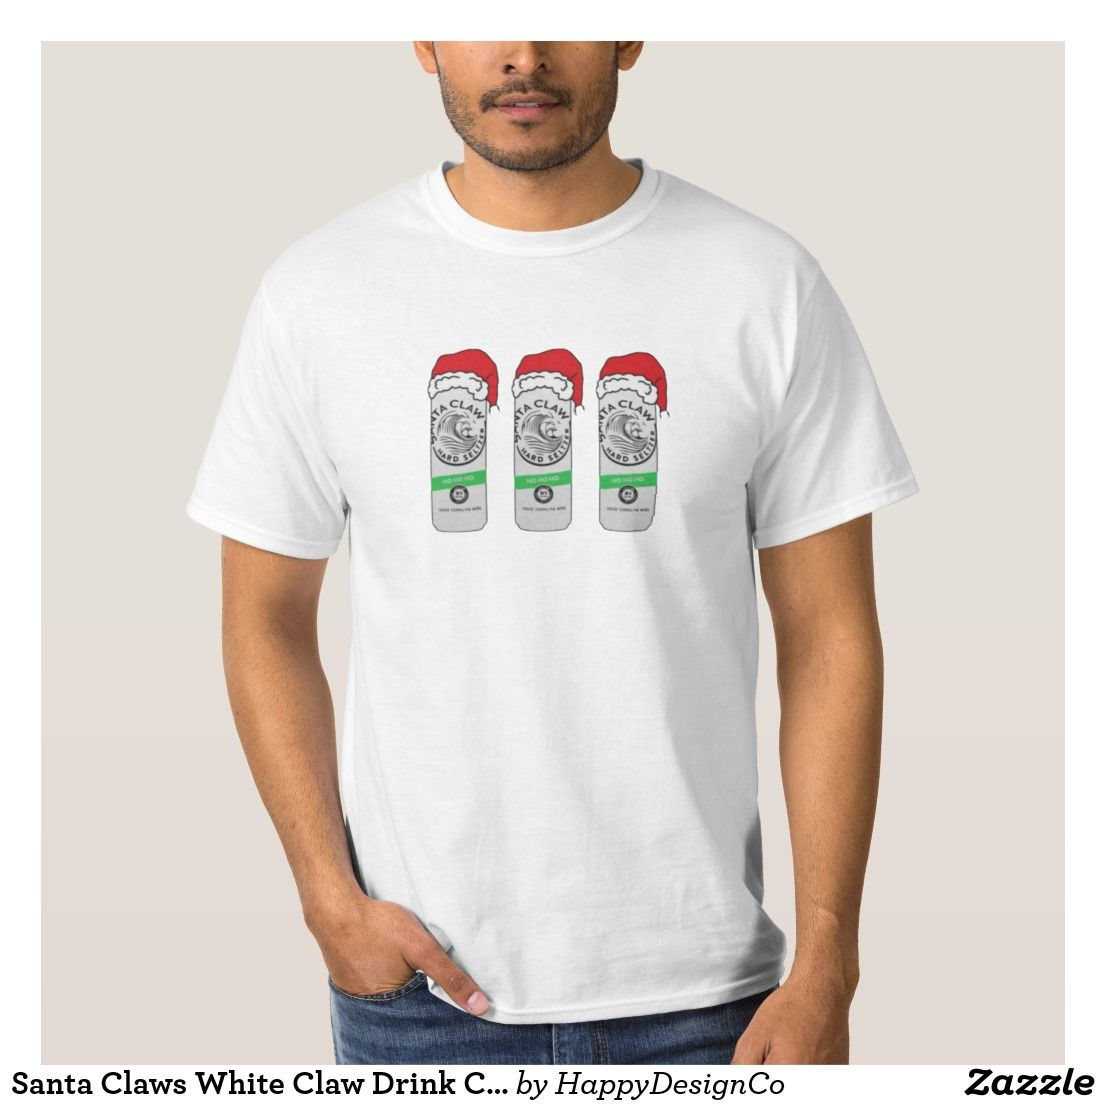 Santa Claws White Claw Drink Christmas Shirt Tacky Christmas Sweater Christmas Party Diy Holidays Gift Ideas Shirt Designs Christmas Shirts Shirts [ 1106 x 1106 Pixel ]